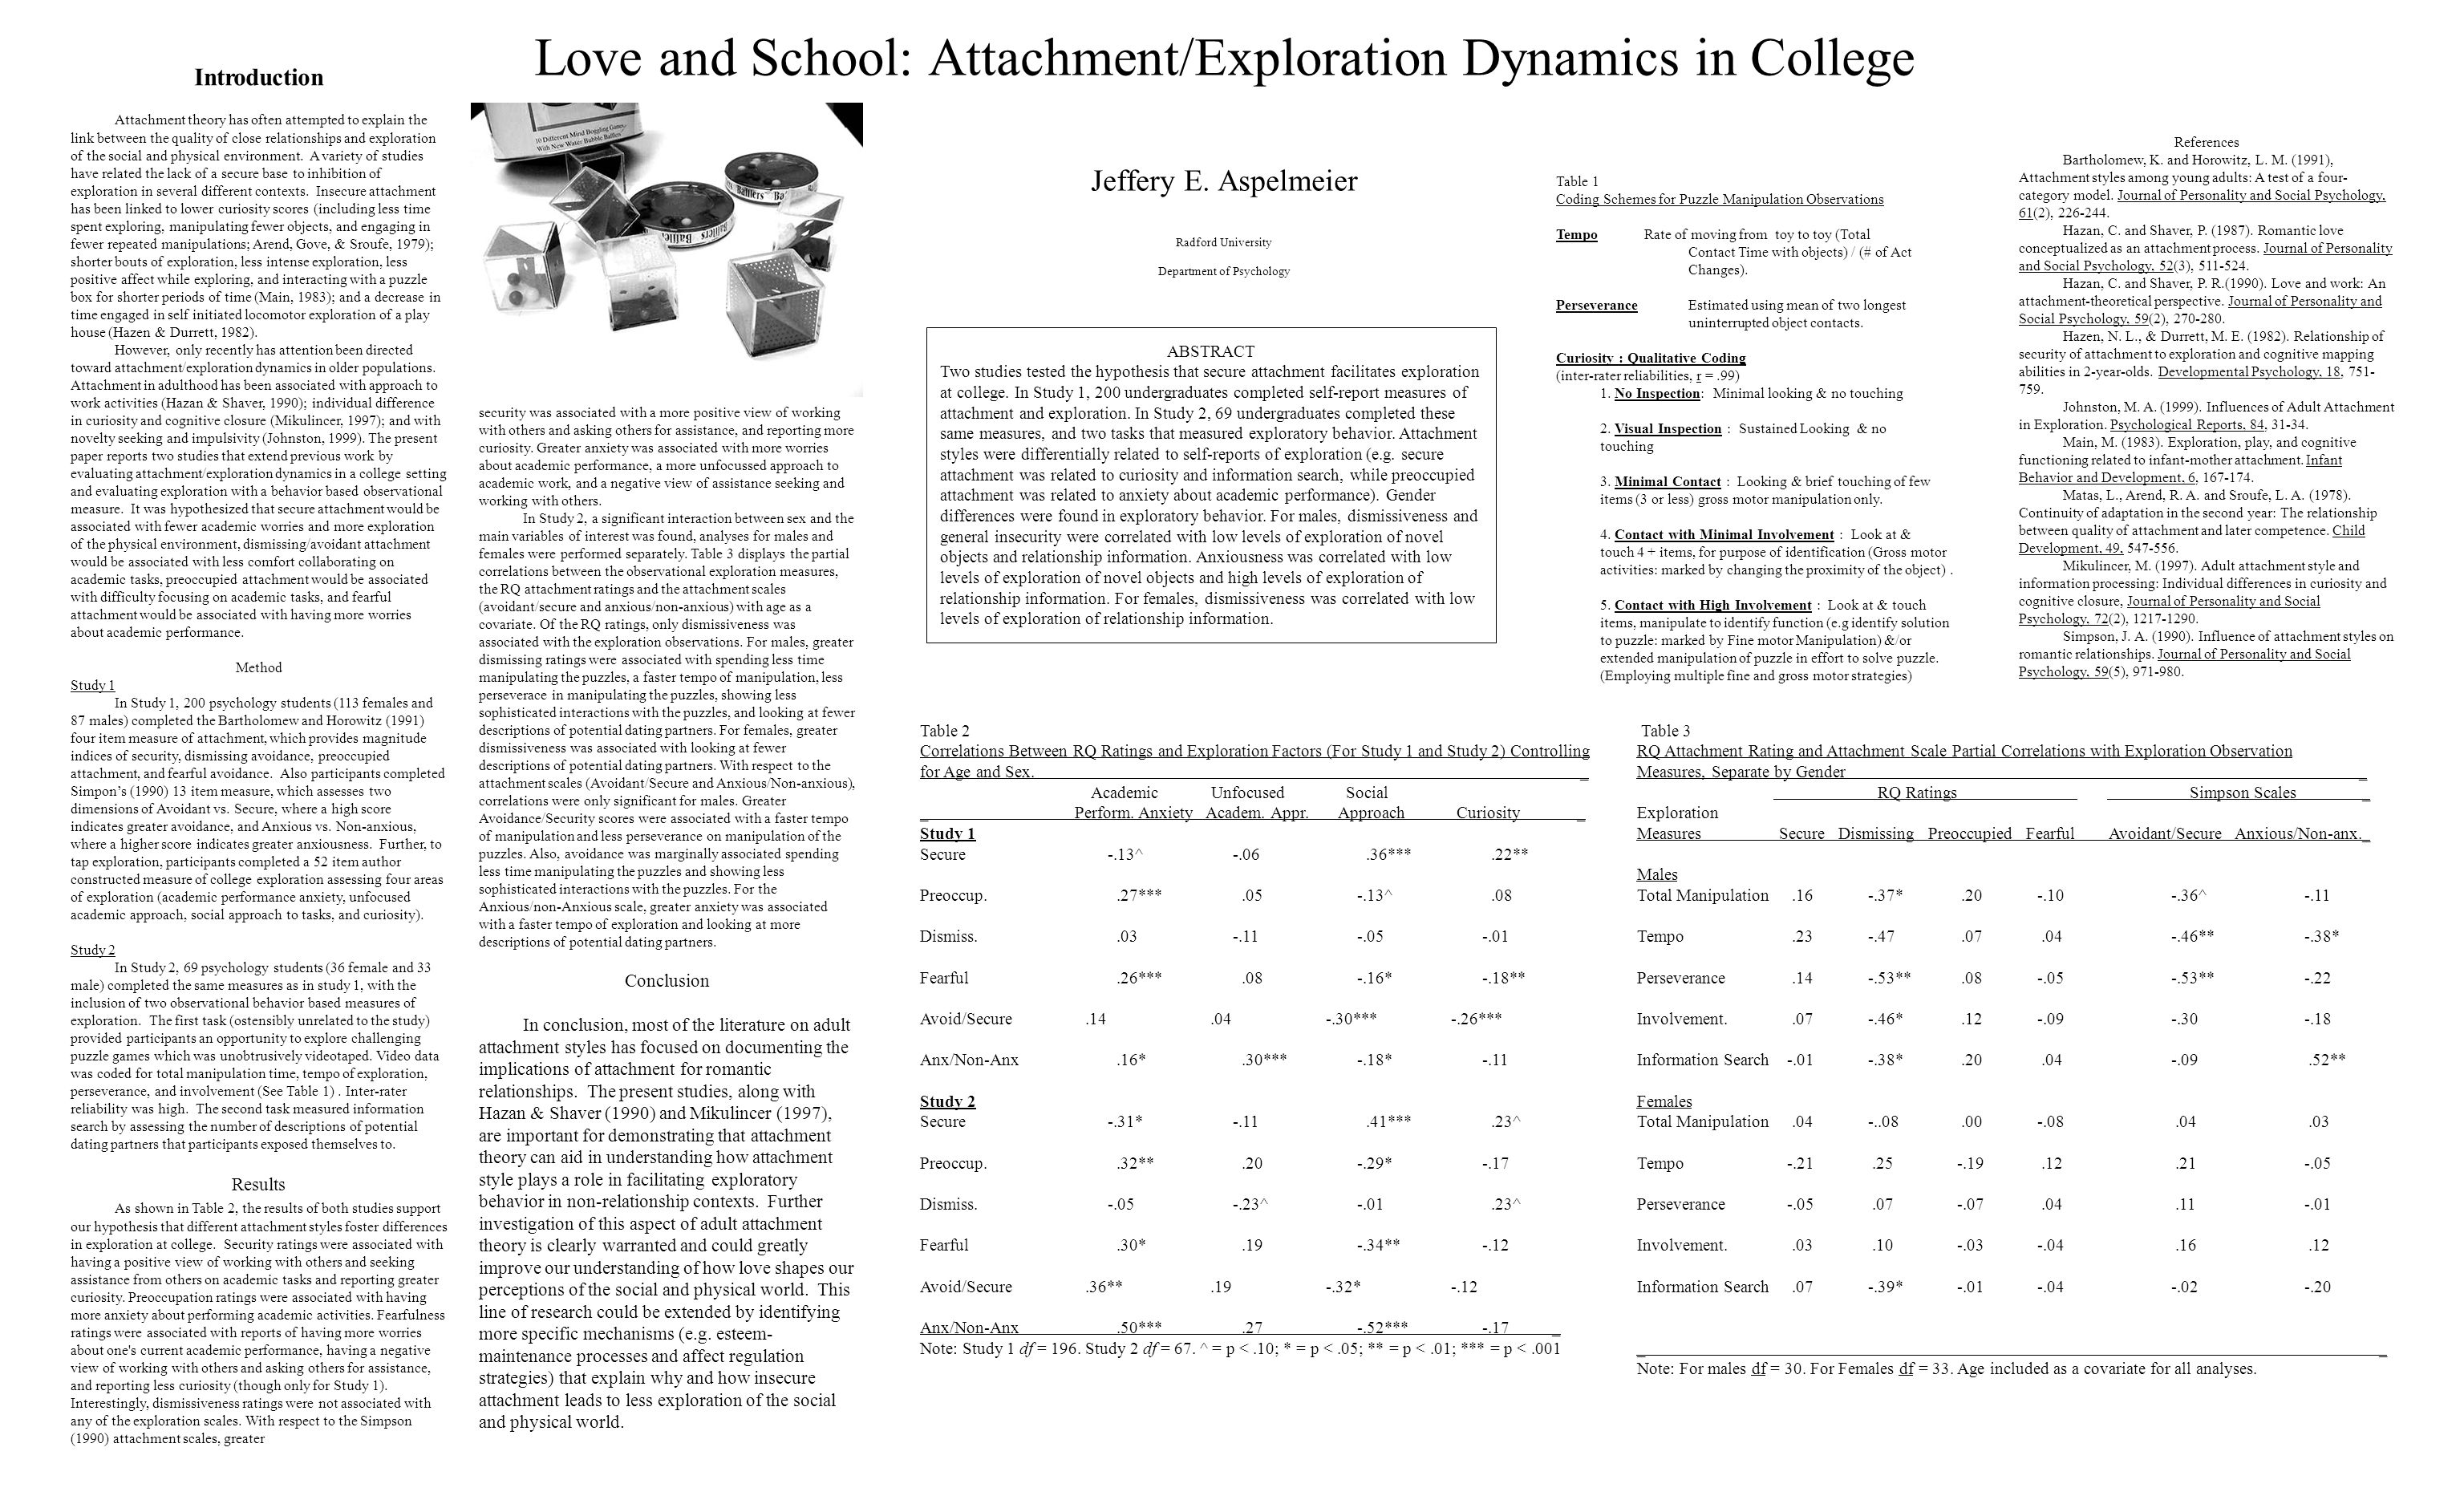 Love and School: Attachment/Exploration Dynamics in College Jeffery E. Aspelmeier Radford University Department of Psychology Introduction Attachment